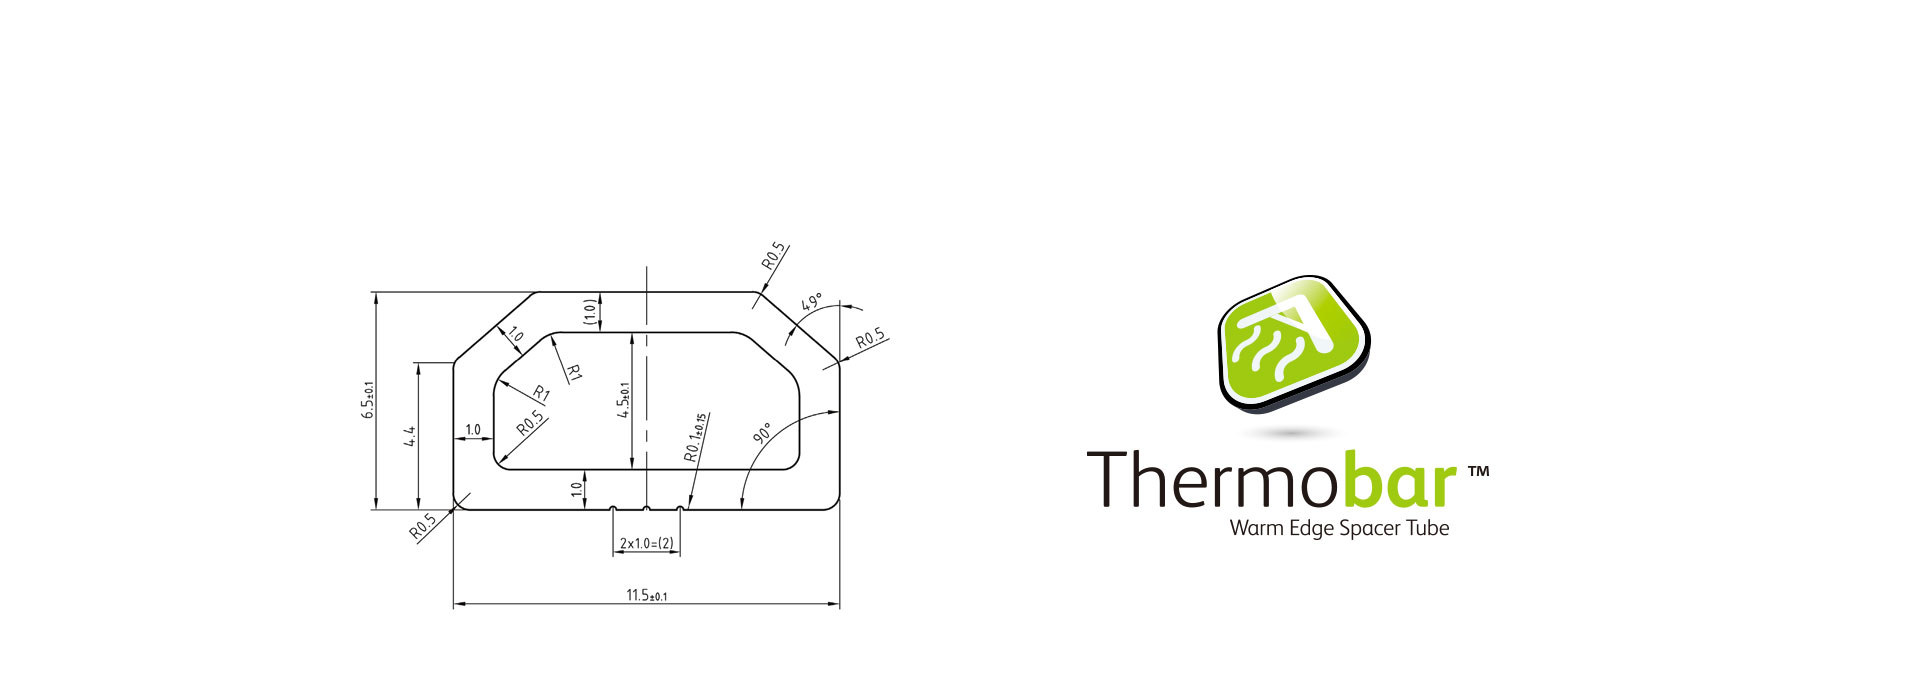 Thermobar Technical Data